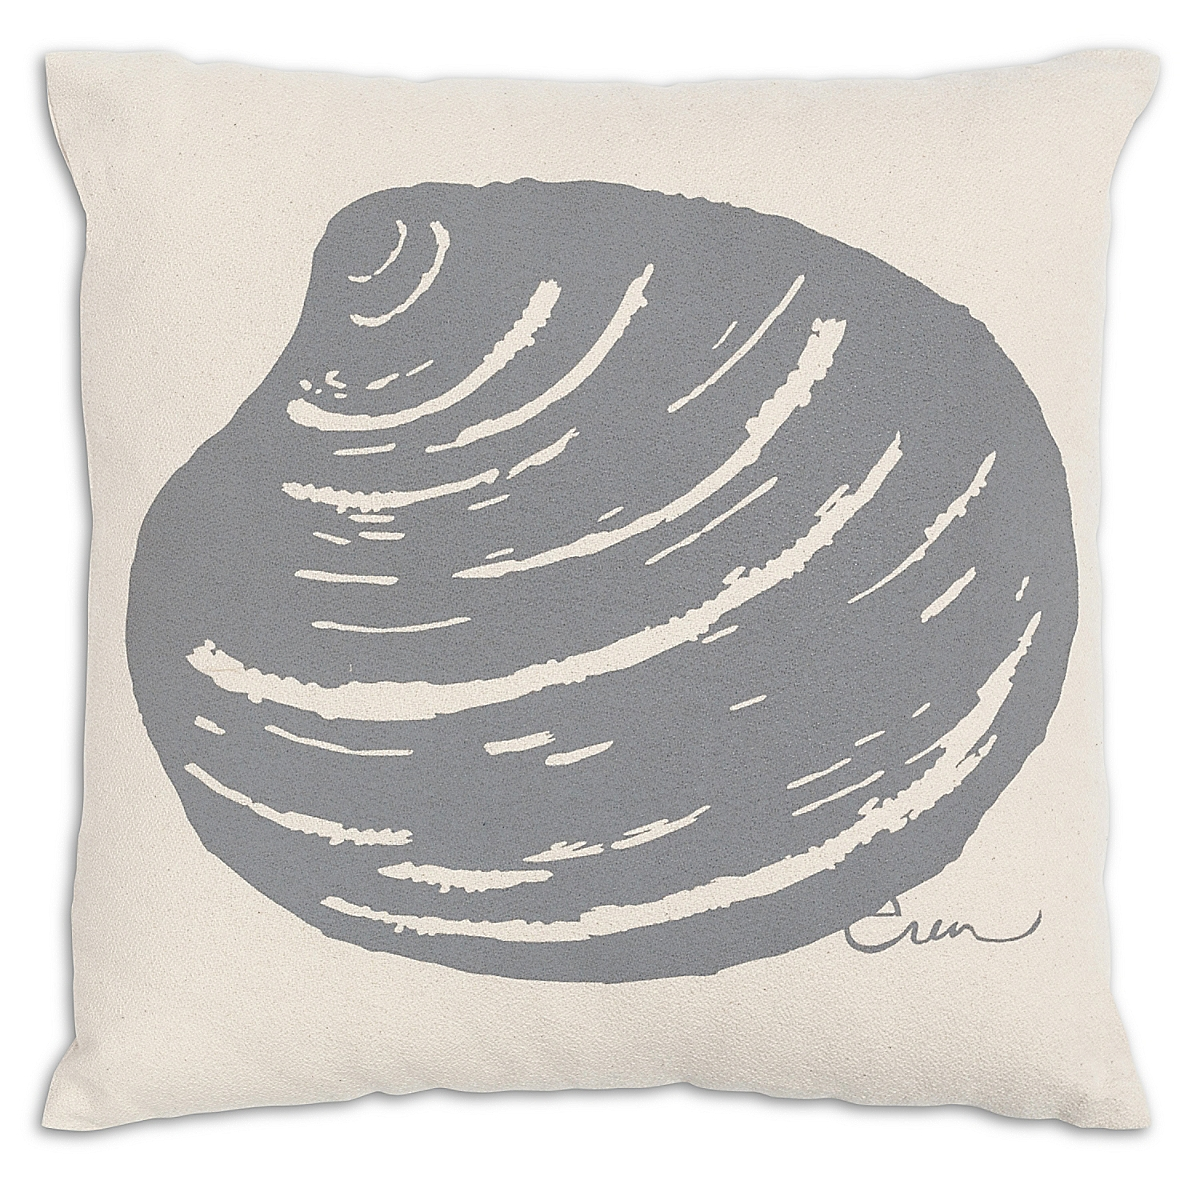 "20"" x 20"" - Clam Pillow: Slate"